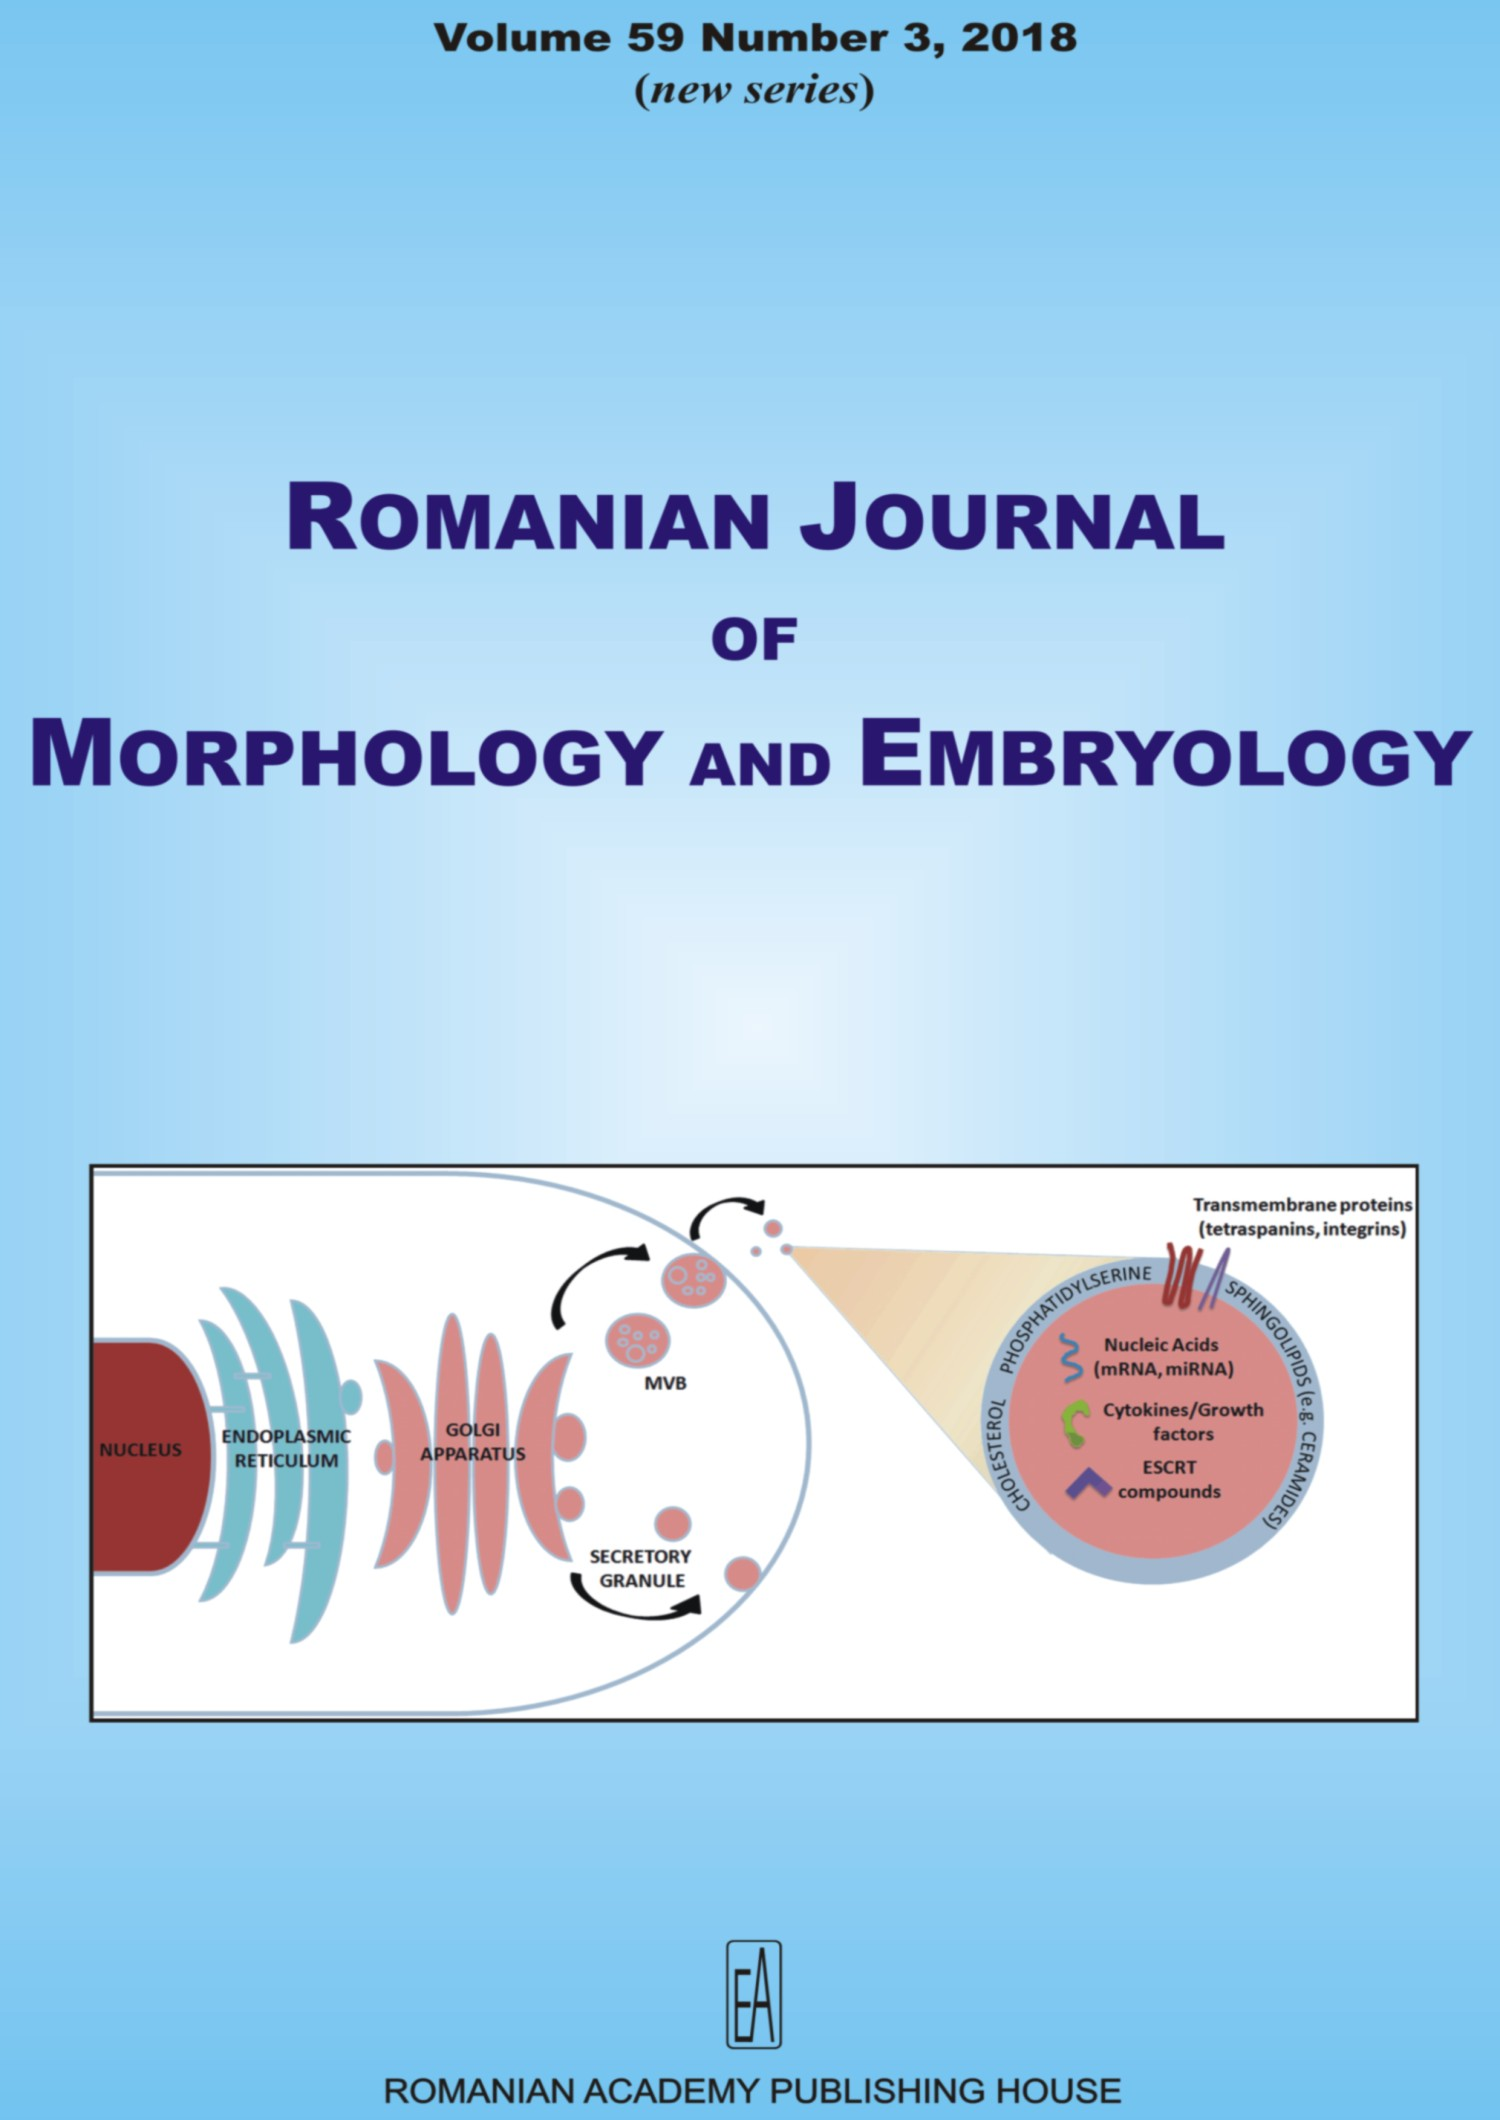 Romanian Journal of Morphology and Embryology, vol. 59 no. 3, 2018